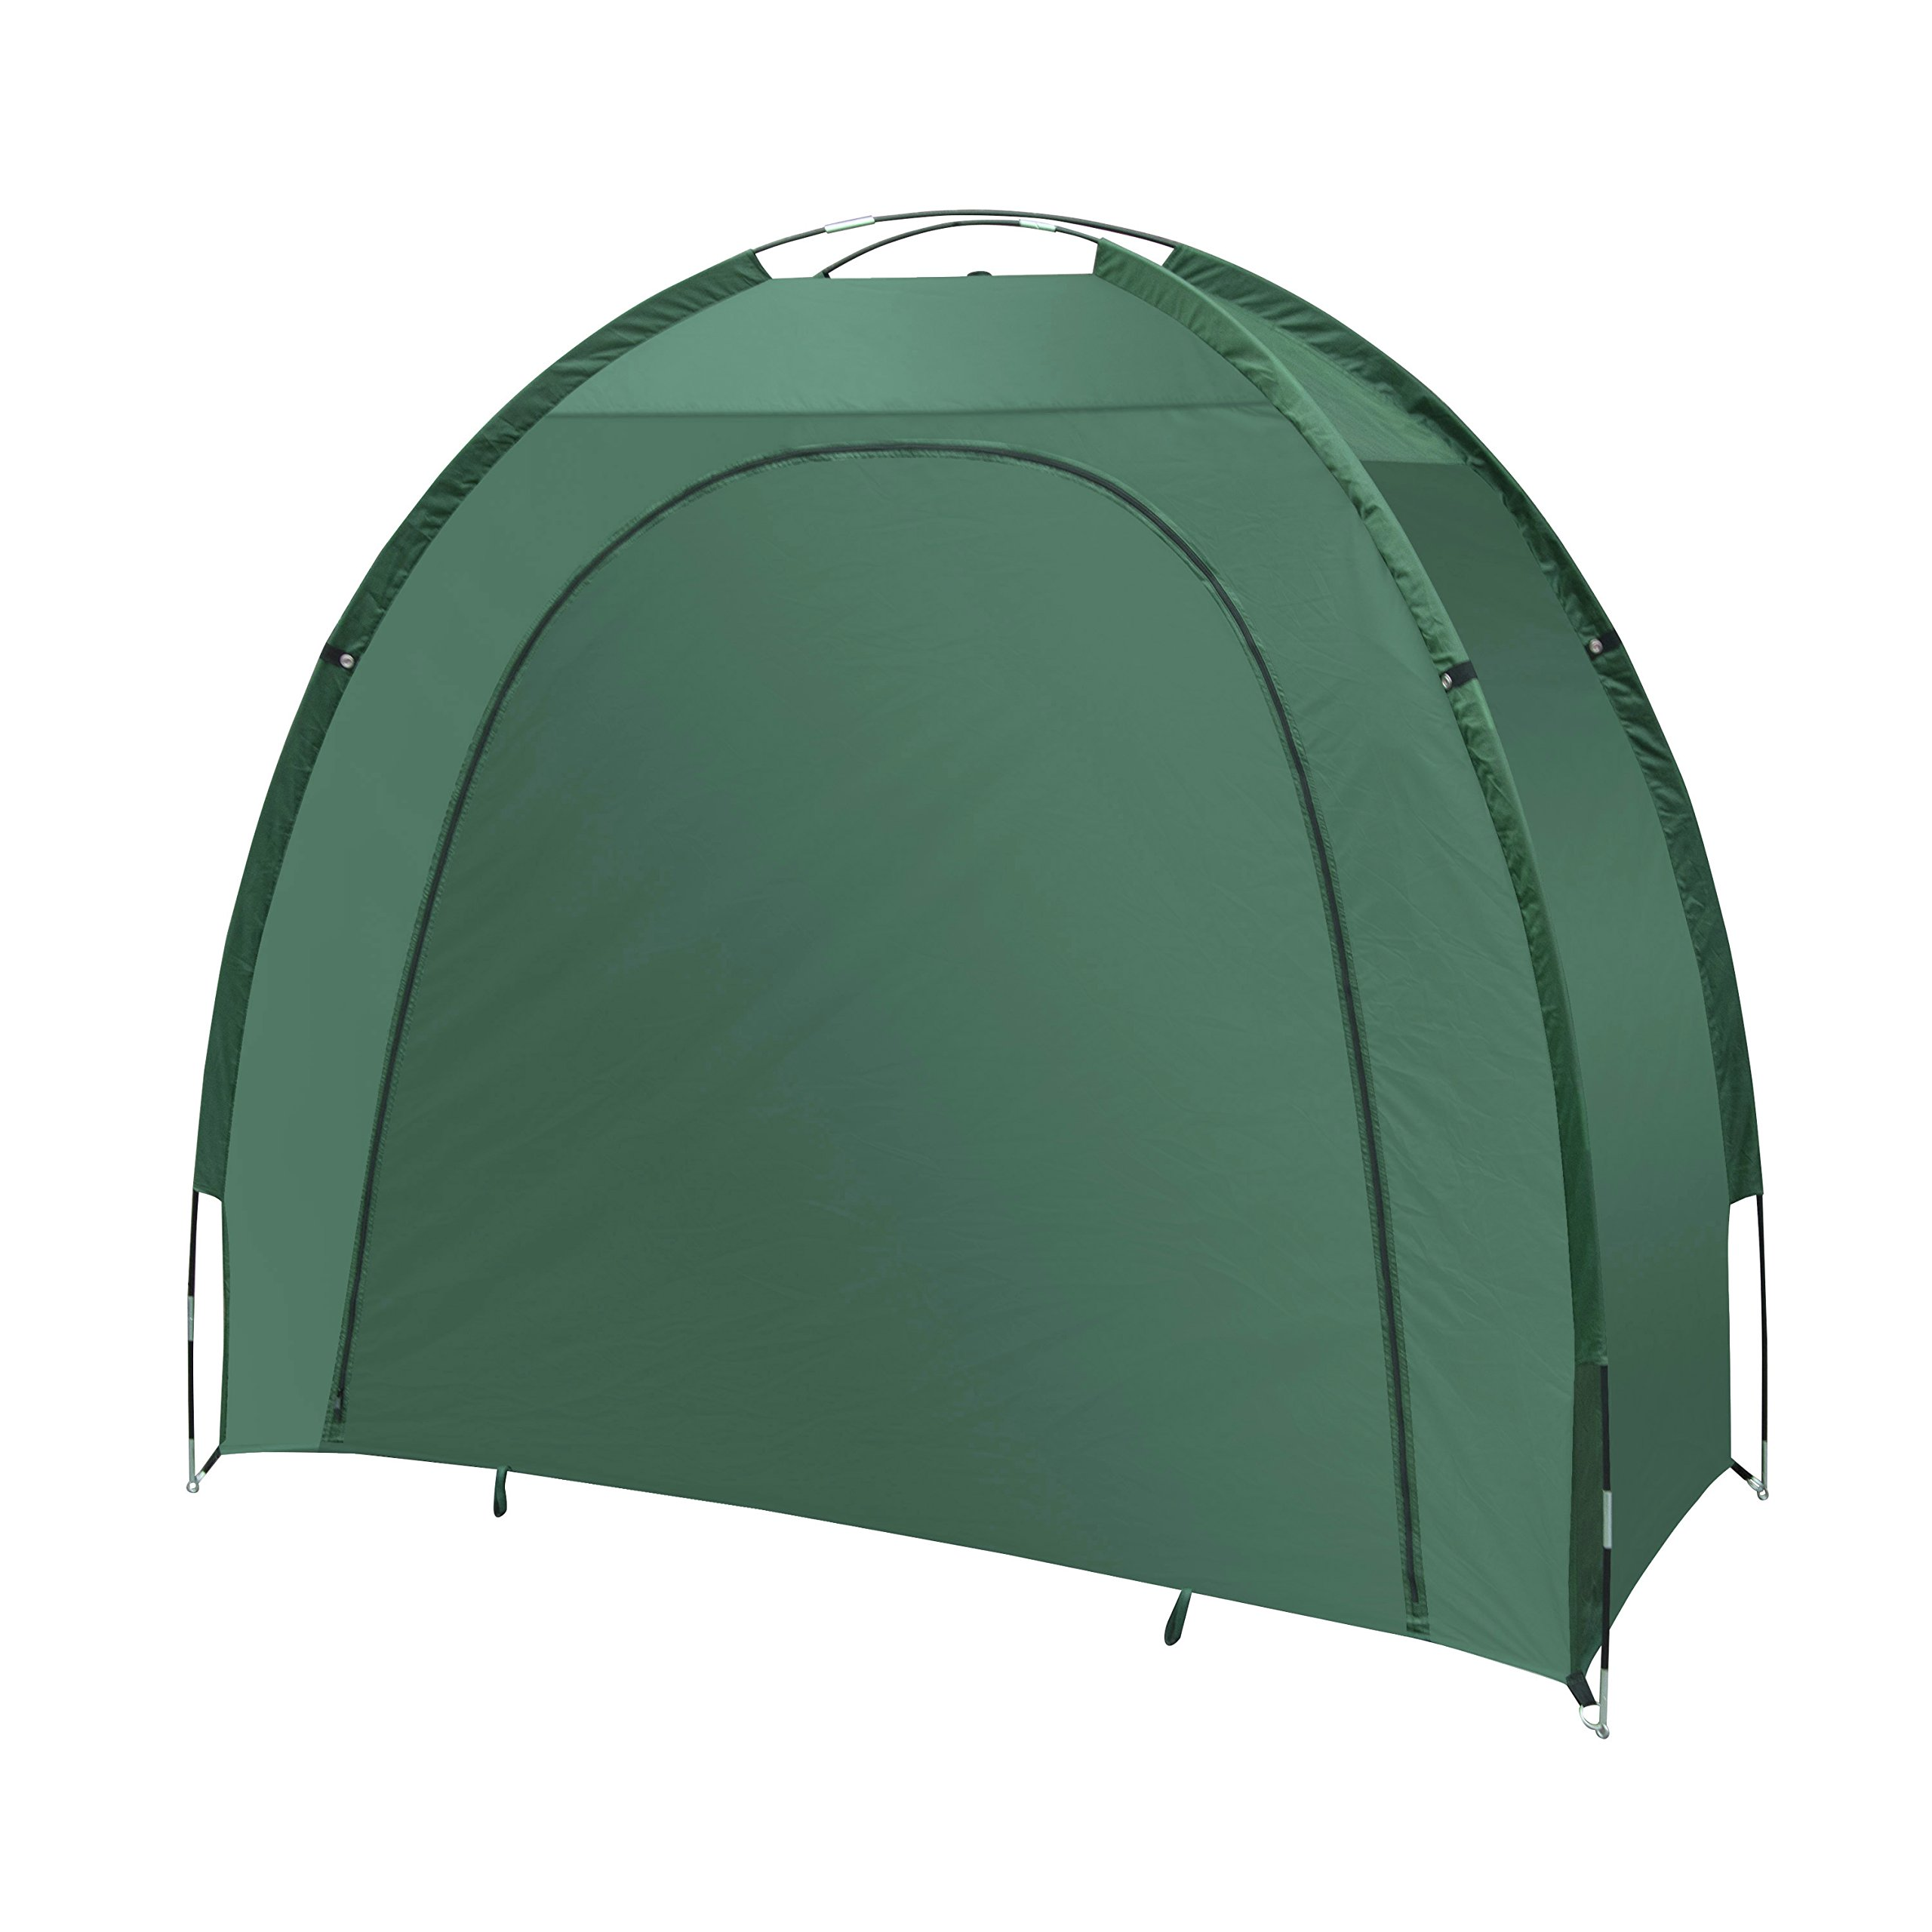 ALEKO BS70GR Portable Pop Up Bike Tent Bicycle Storage Shed Weather Resistant Protection Outdoor with Carrying Case 82 X 70 X 34 Inches Green by ALEKO